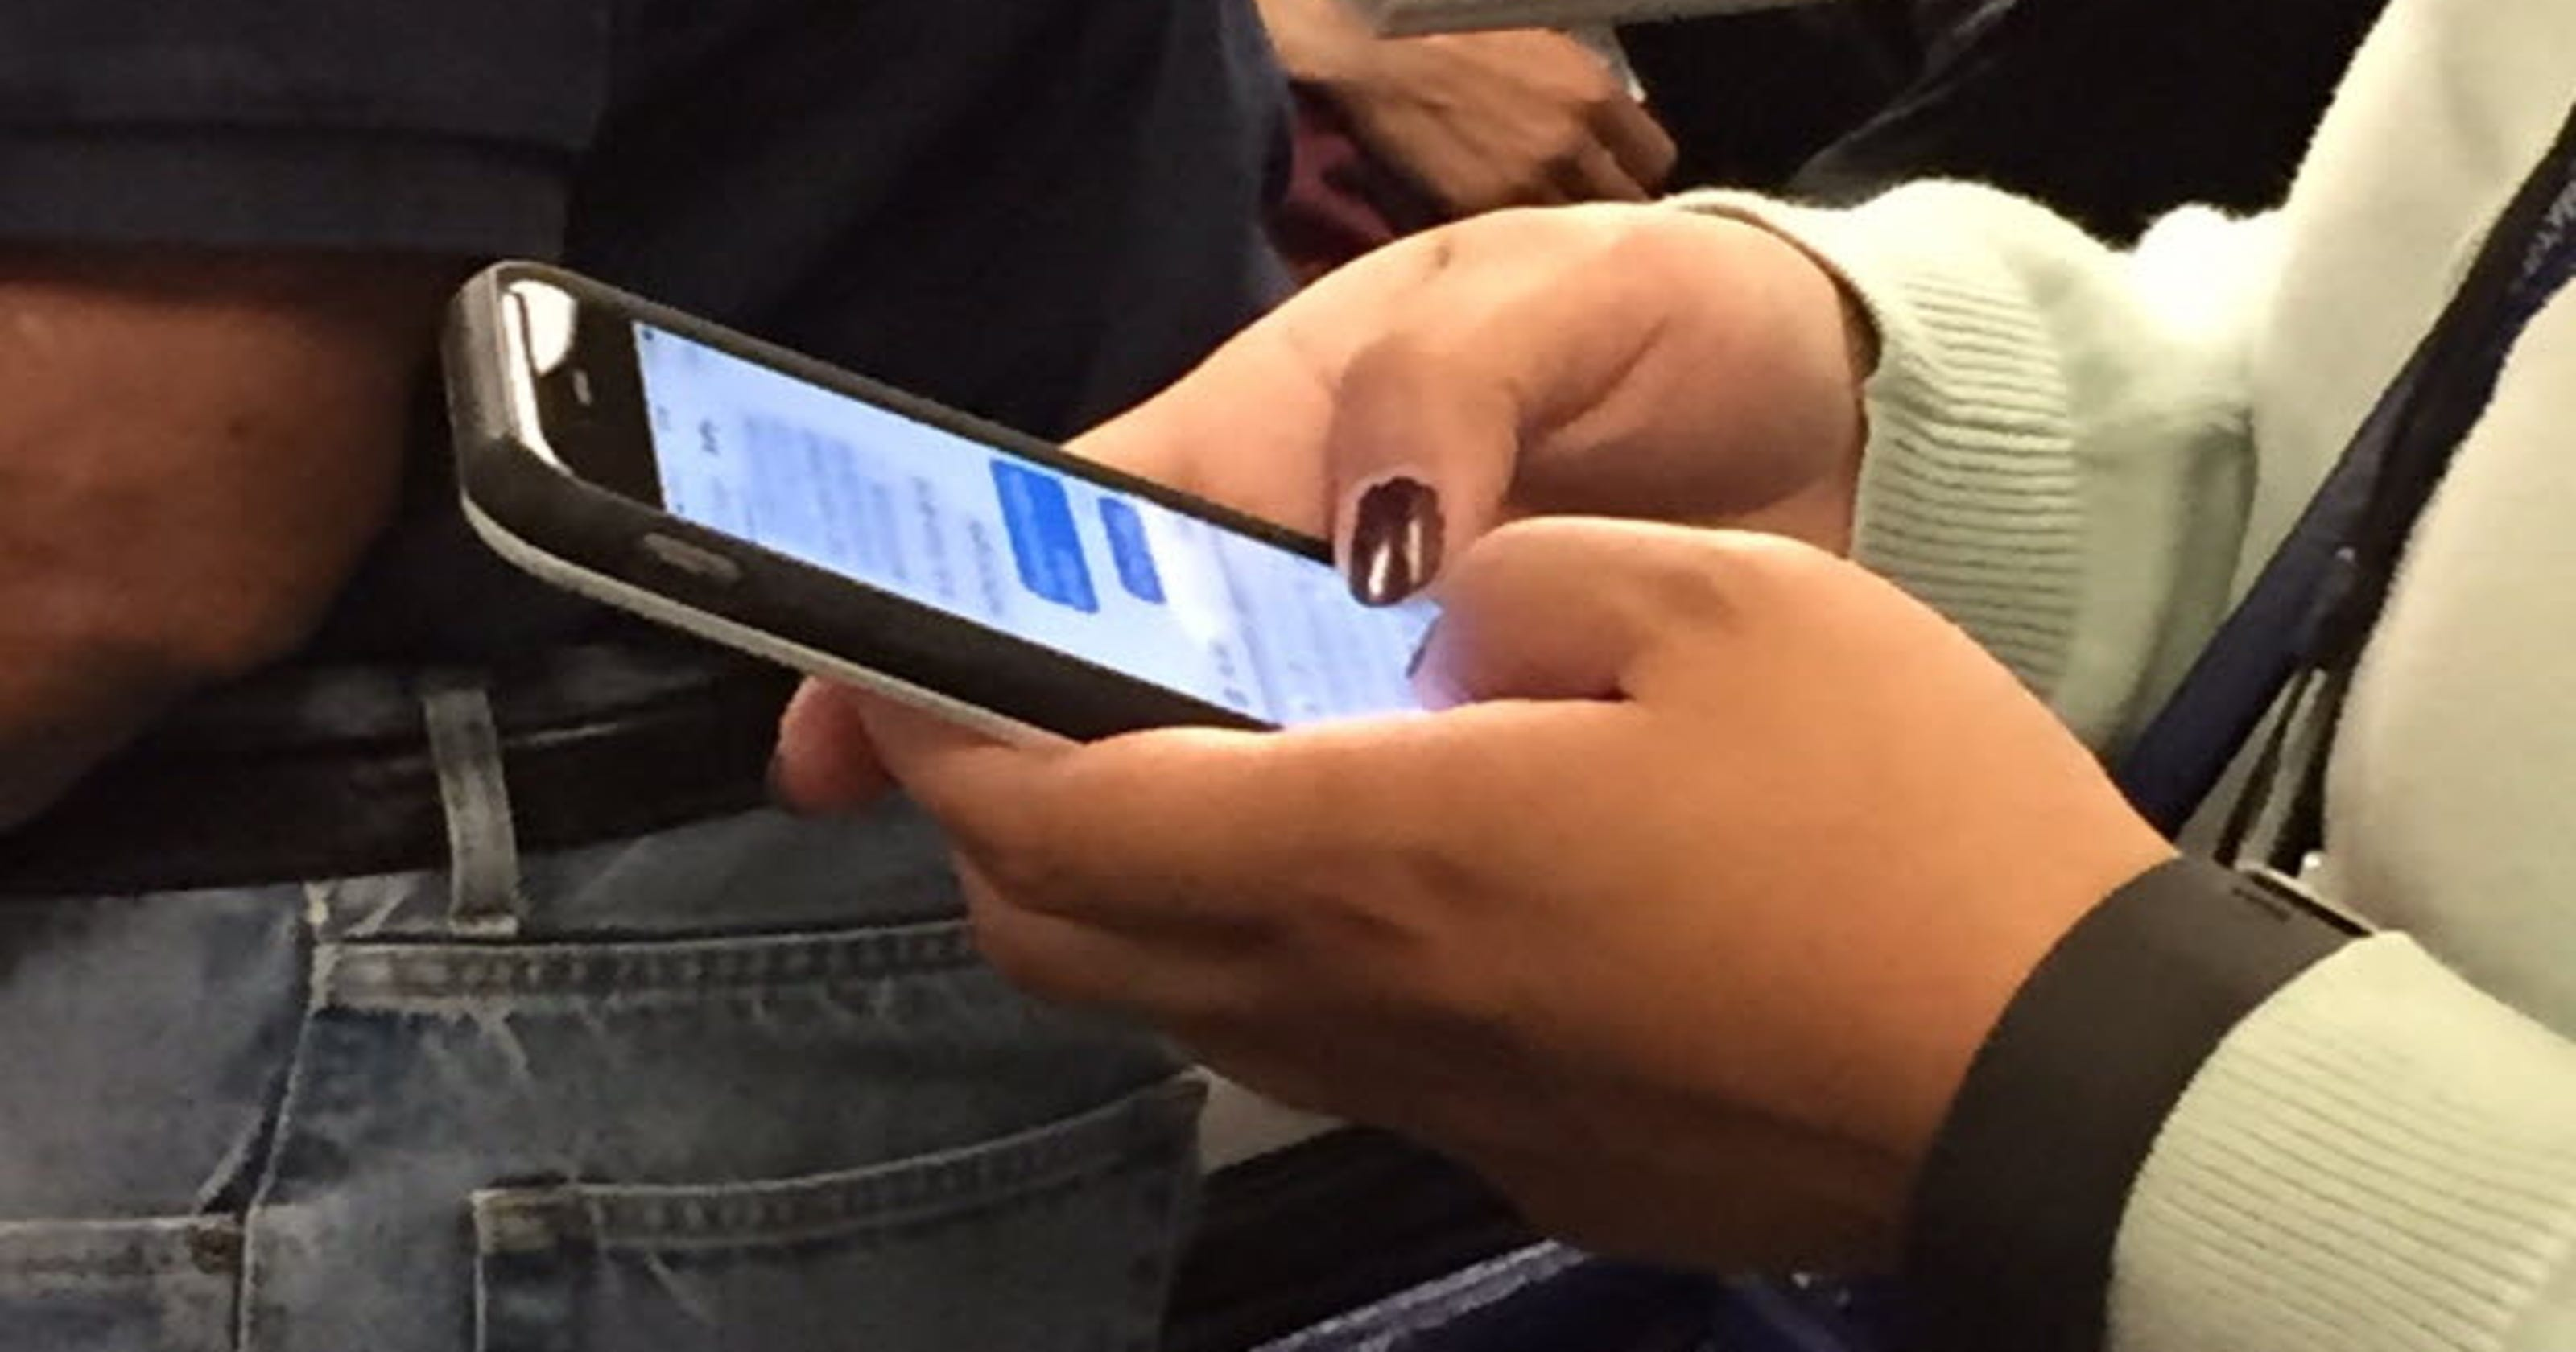 Your texts are not as secure as you think